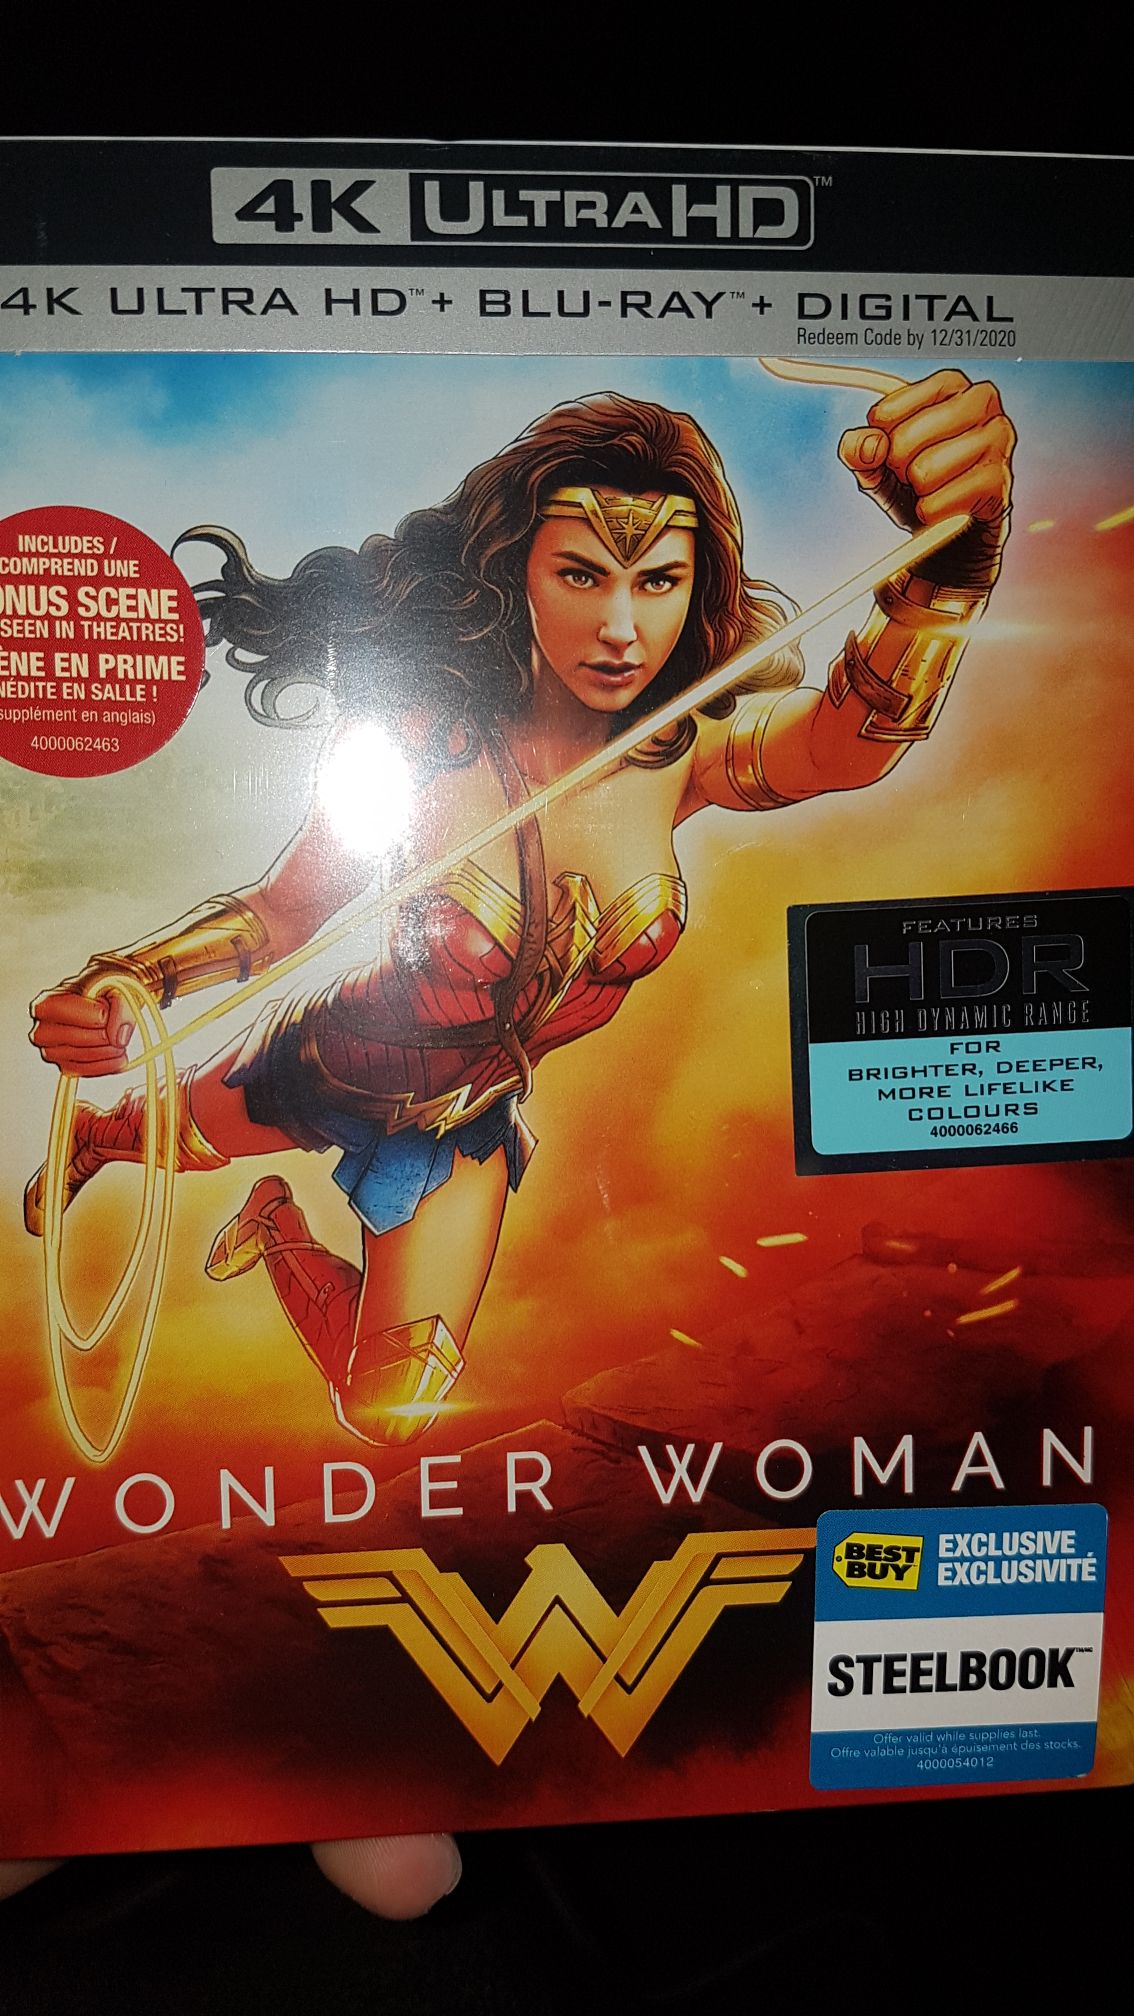 Wonder Woman Steelbook 2017 883929605200